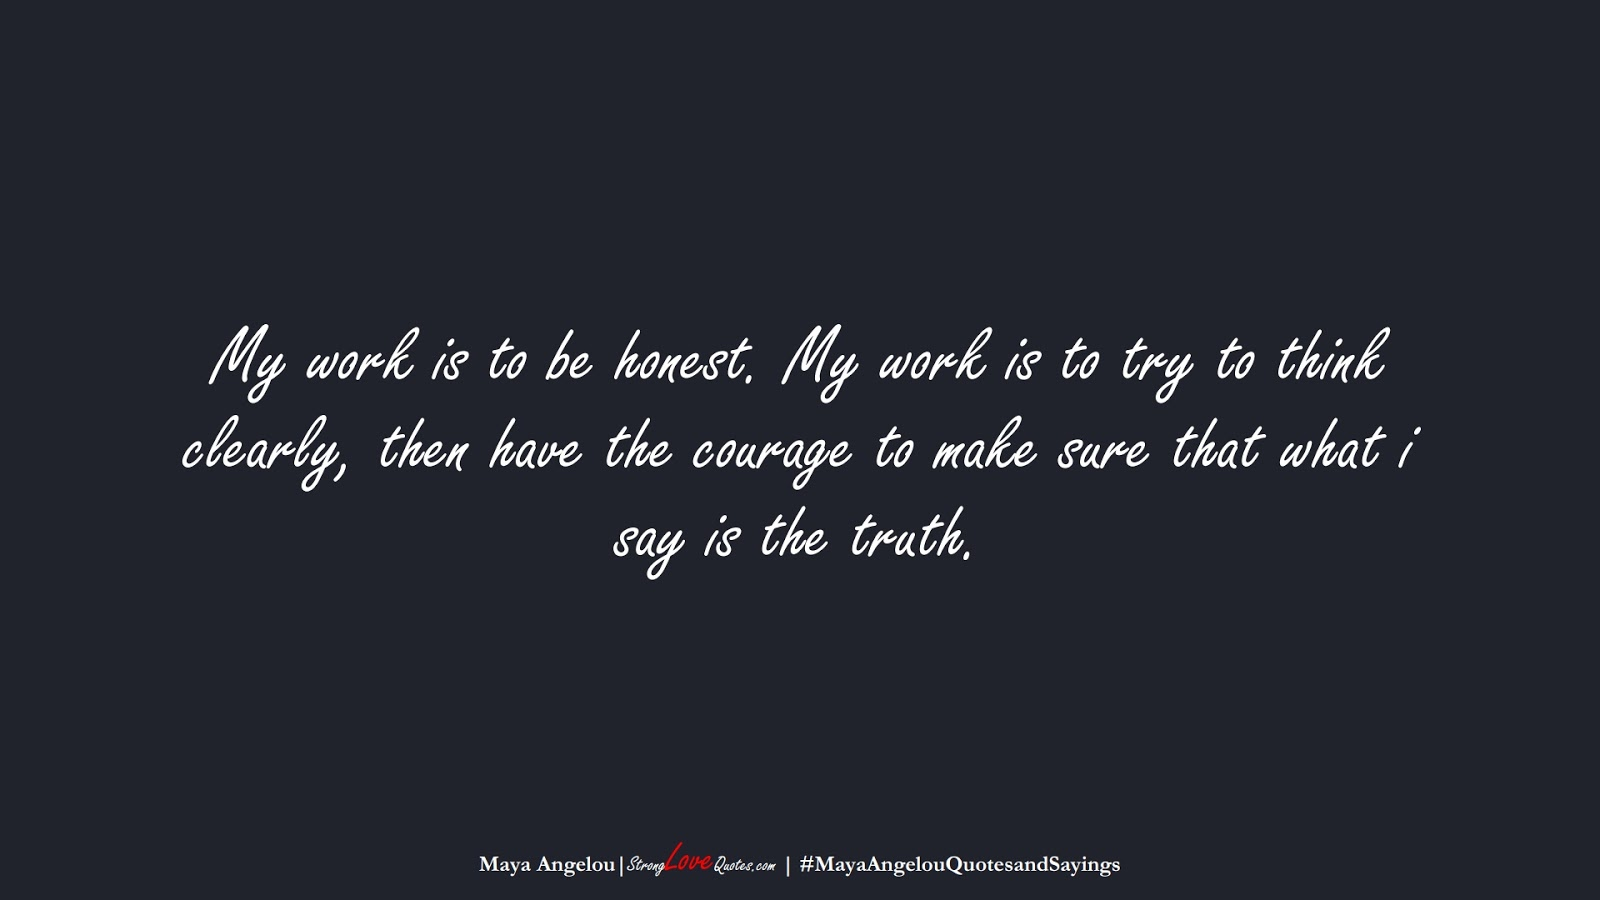 My work is to be honest. My work is to try to think clearly, then have the courage to make sure that what i say is the truth. (Maya Angelou);  #MayaAngelouQuotesandSayings